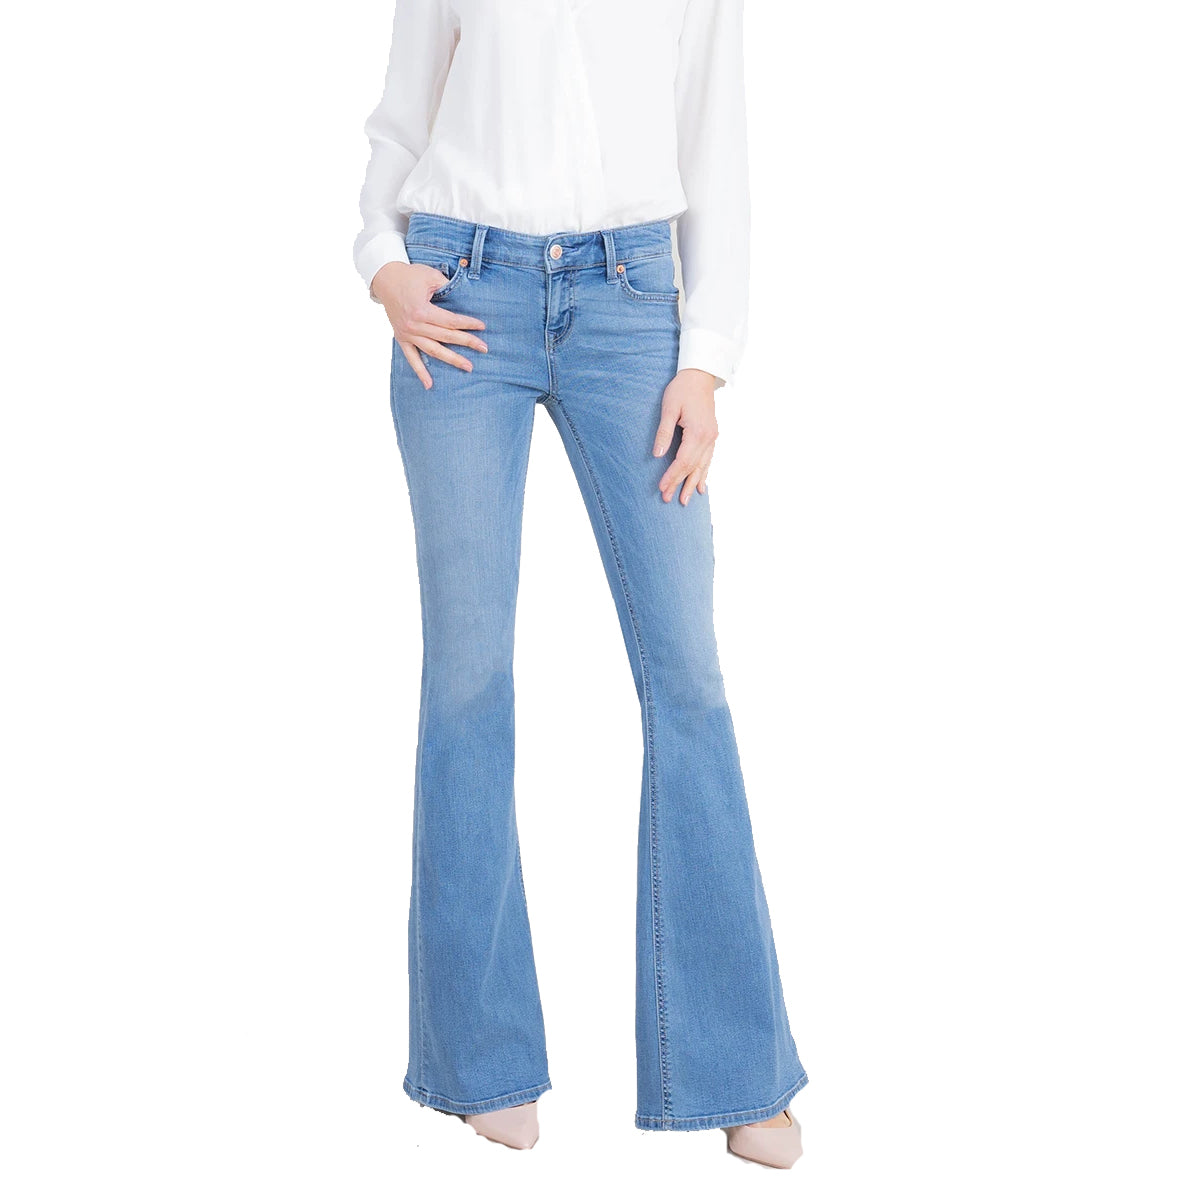 Level99 Women's Dahlia Flare Jeans - Vintage Blue